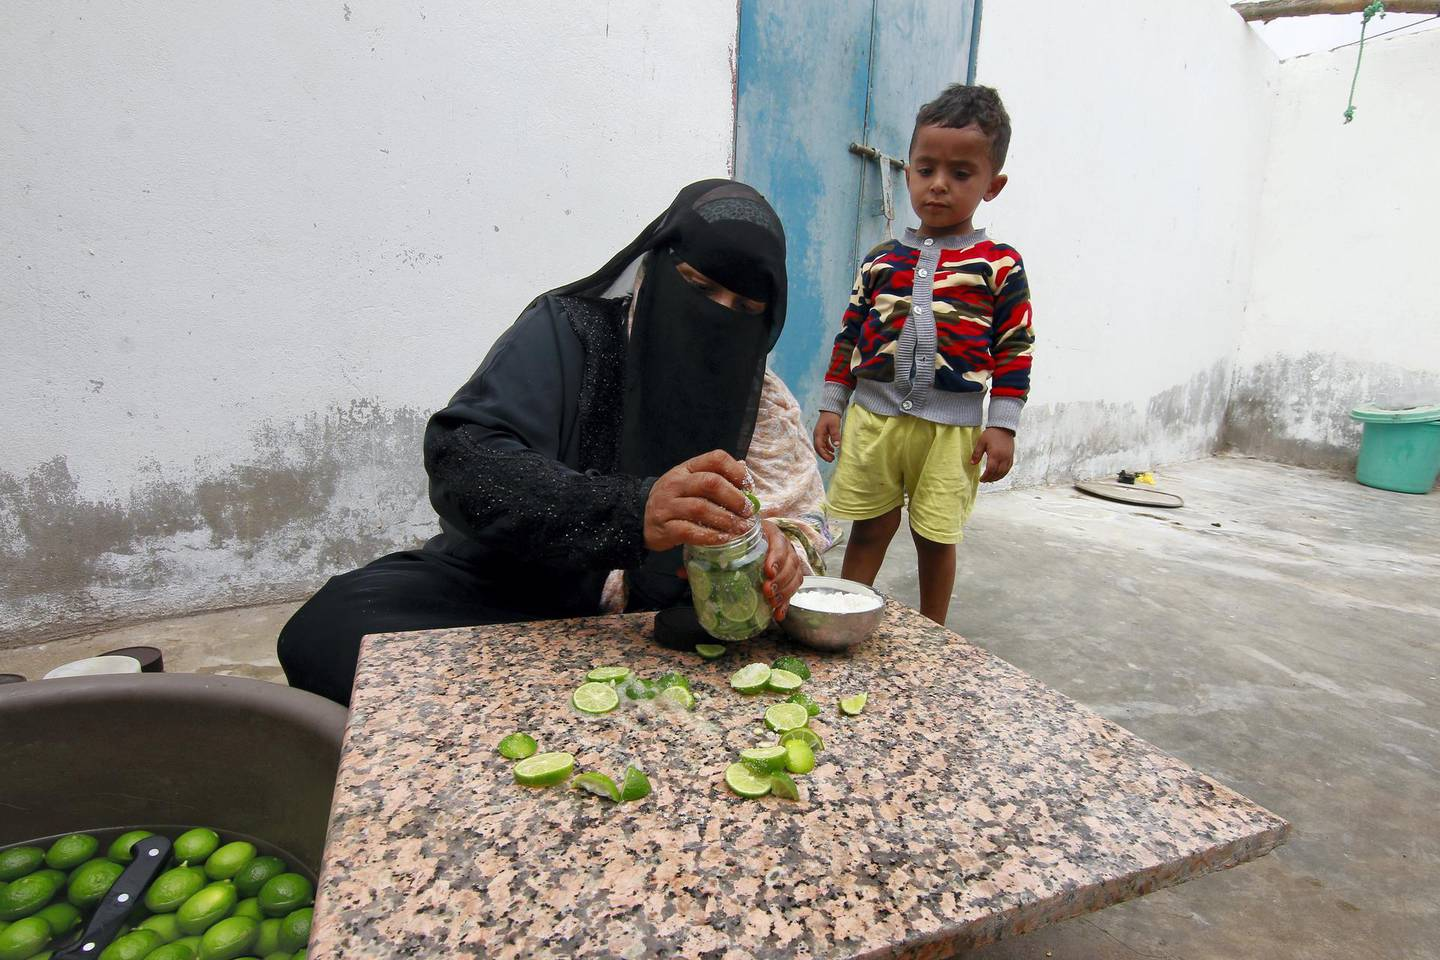 Naseemh, 40 years old, is married with two children, Gana 8 years old and Mosa 5 years old. Lahaj, Yemen, February 2021 . Courtesy International Committee of the Red Cross